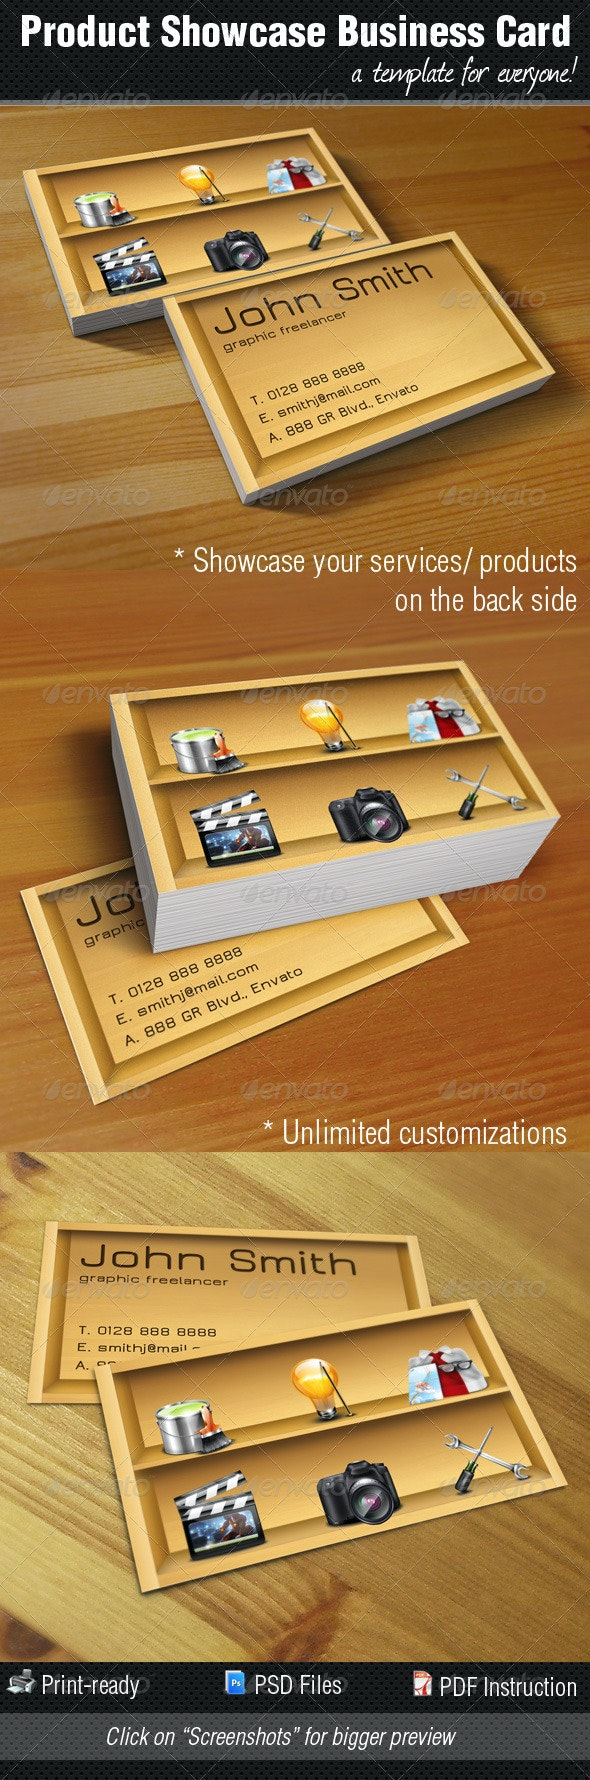 Product / Service Showcase Business Card - Creative Business Cards